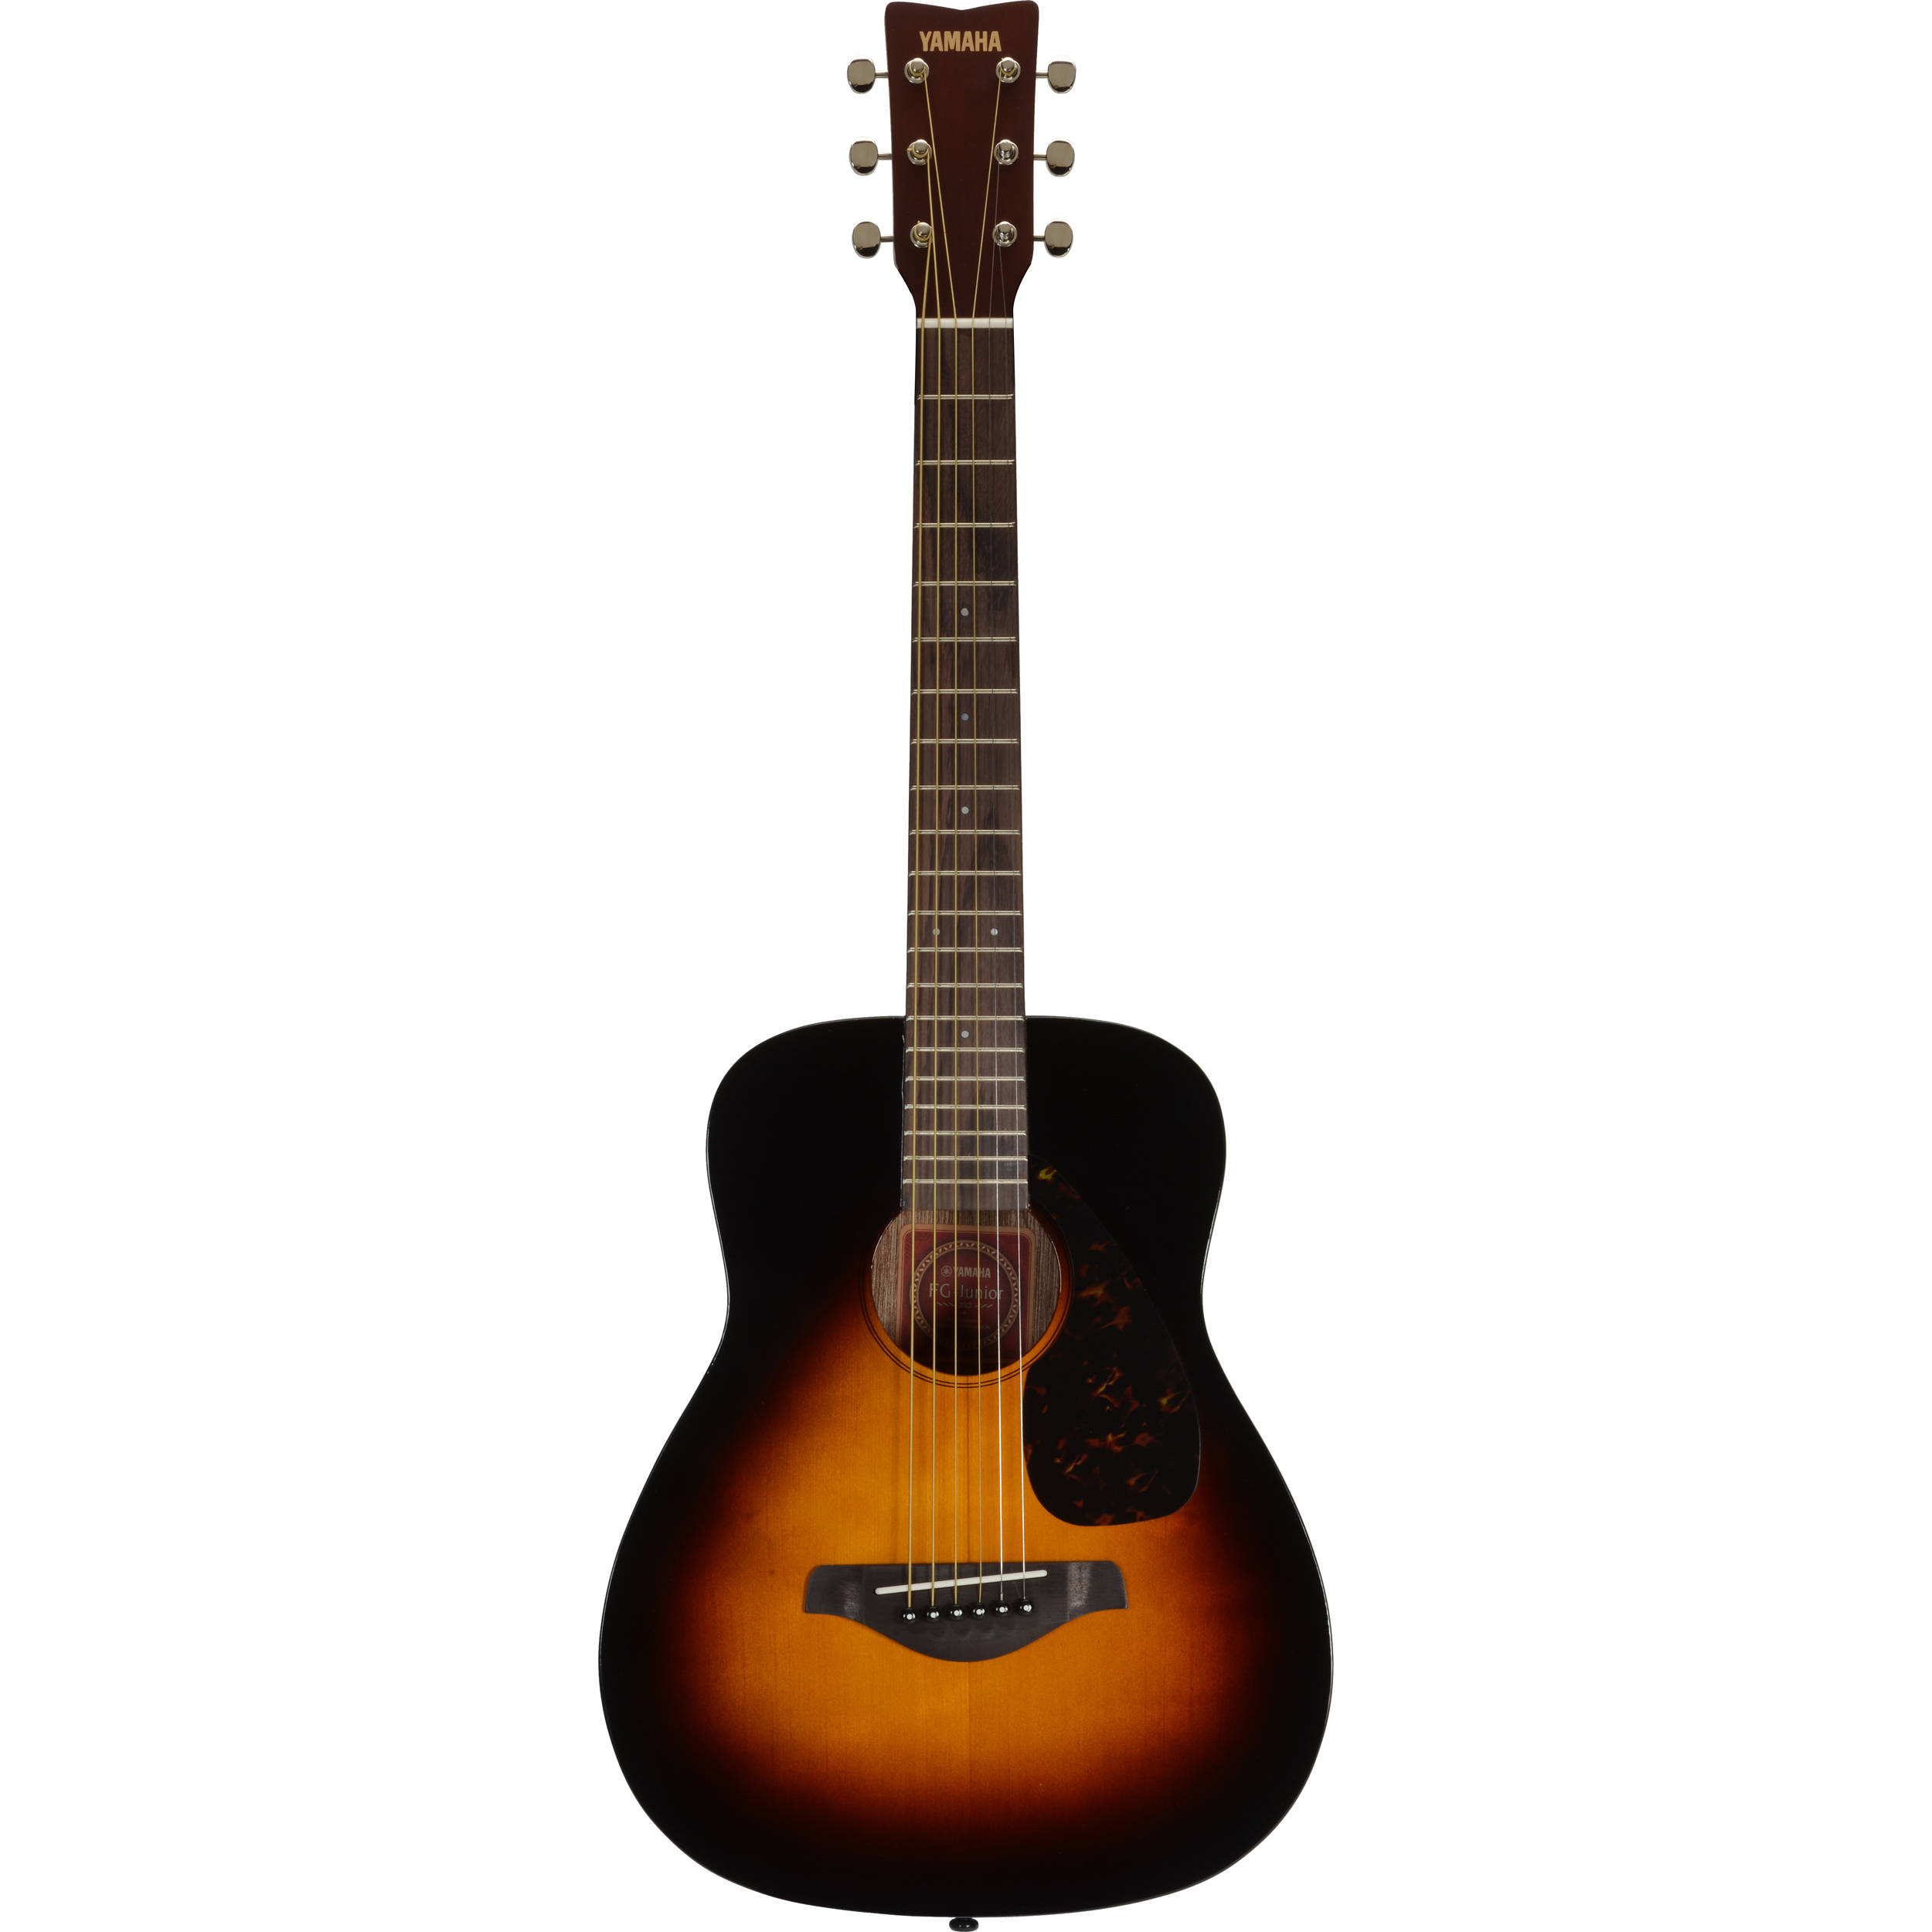 yamaha jr2 3 4 size acoustic guitar tobacco sunburst jr2 tbs